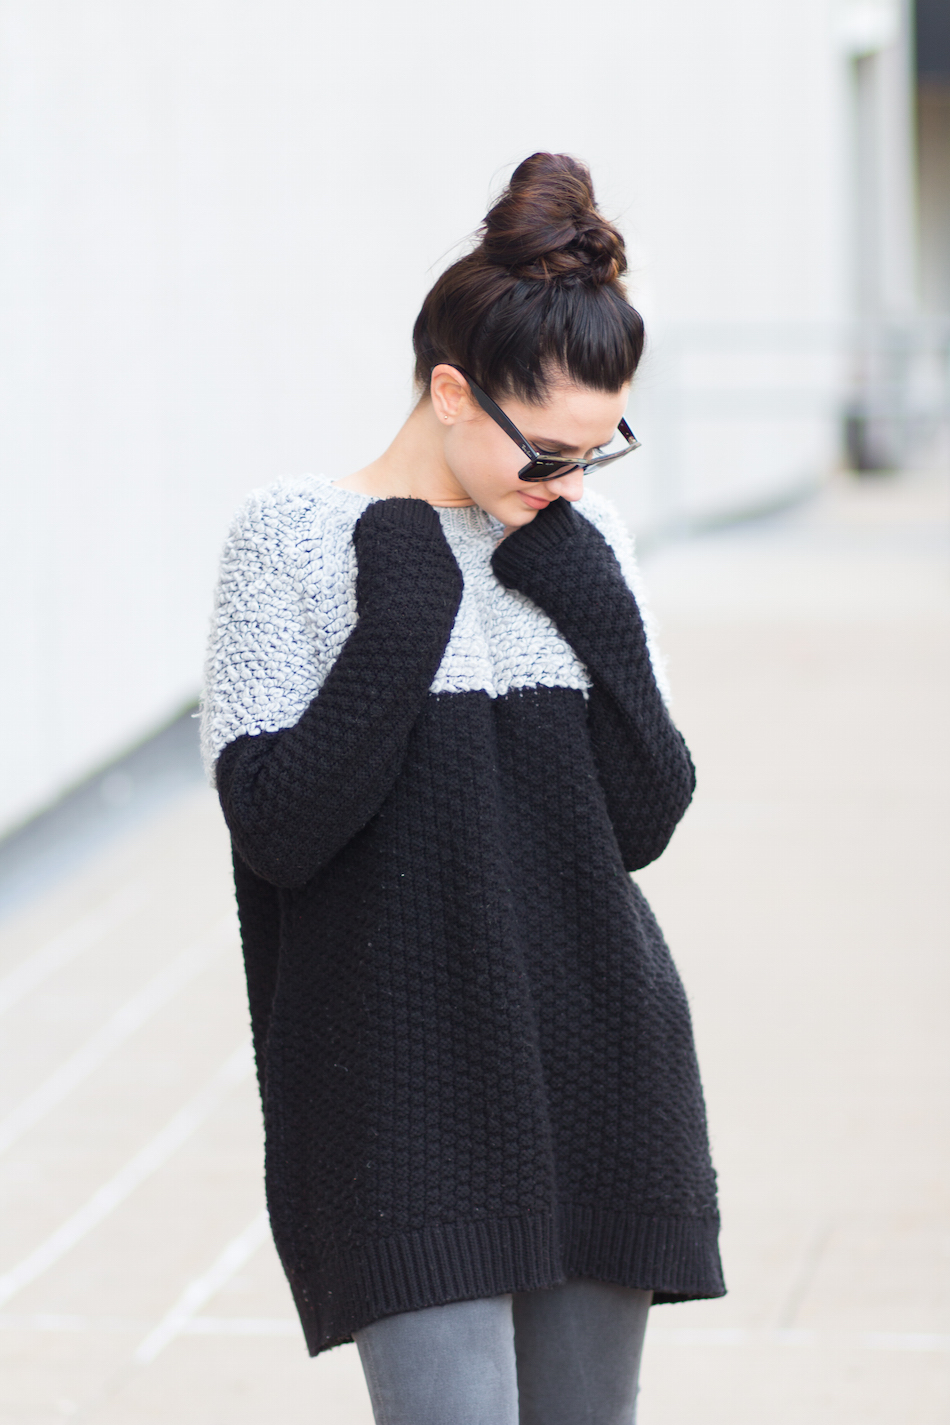 oversized sweater + messy bun +shades